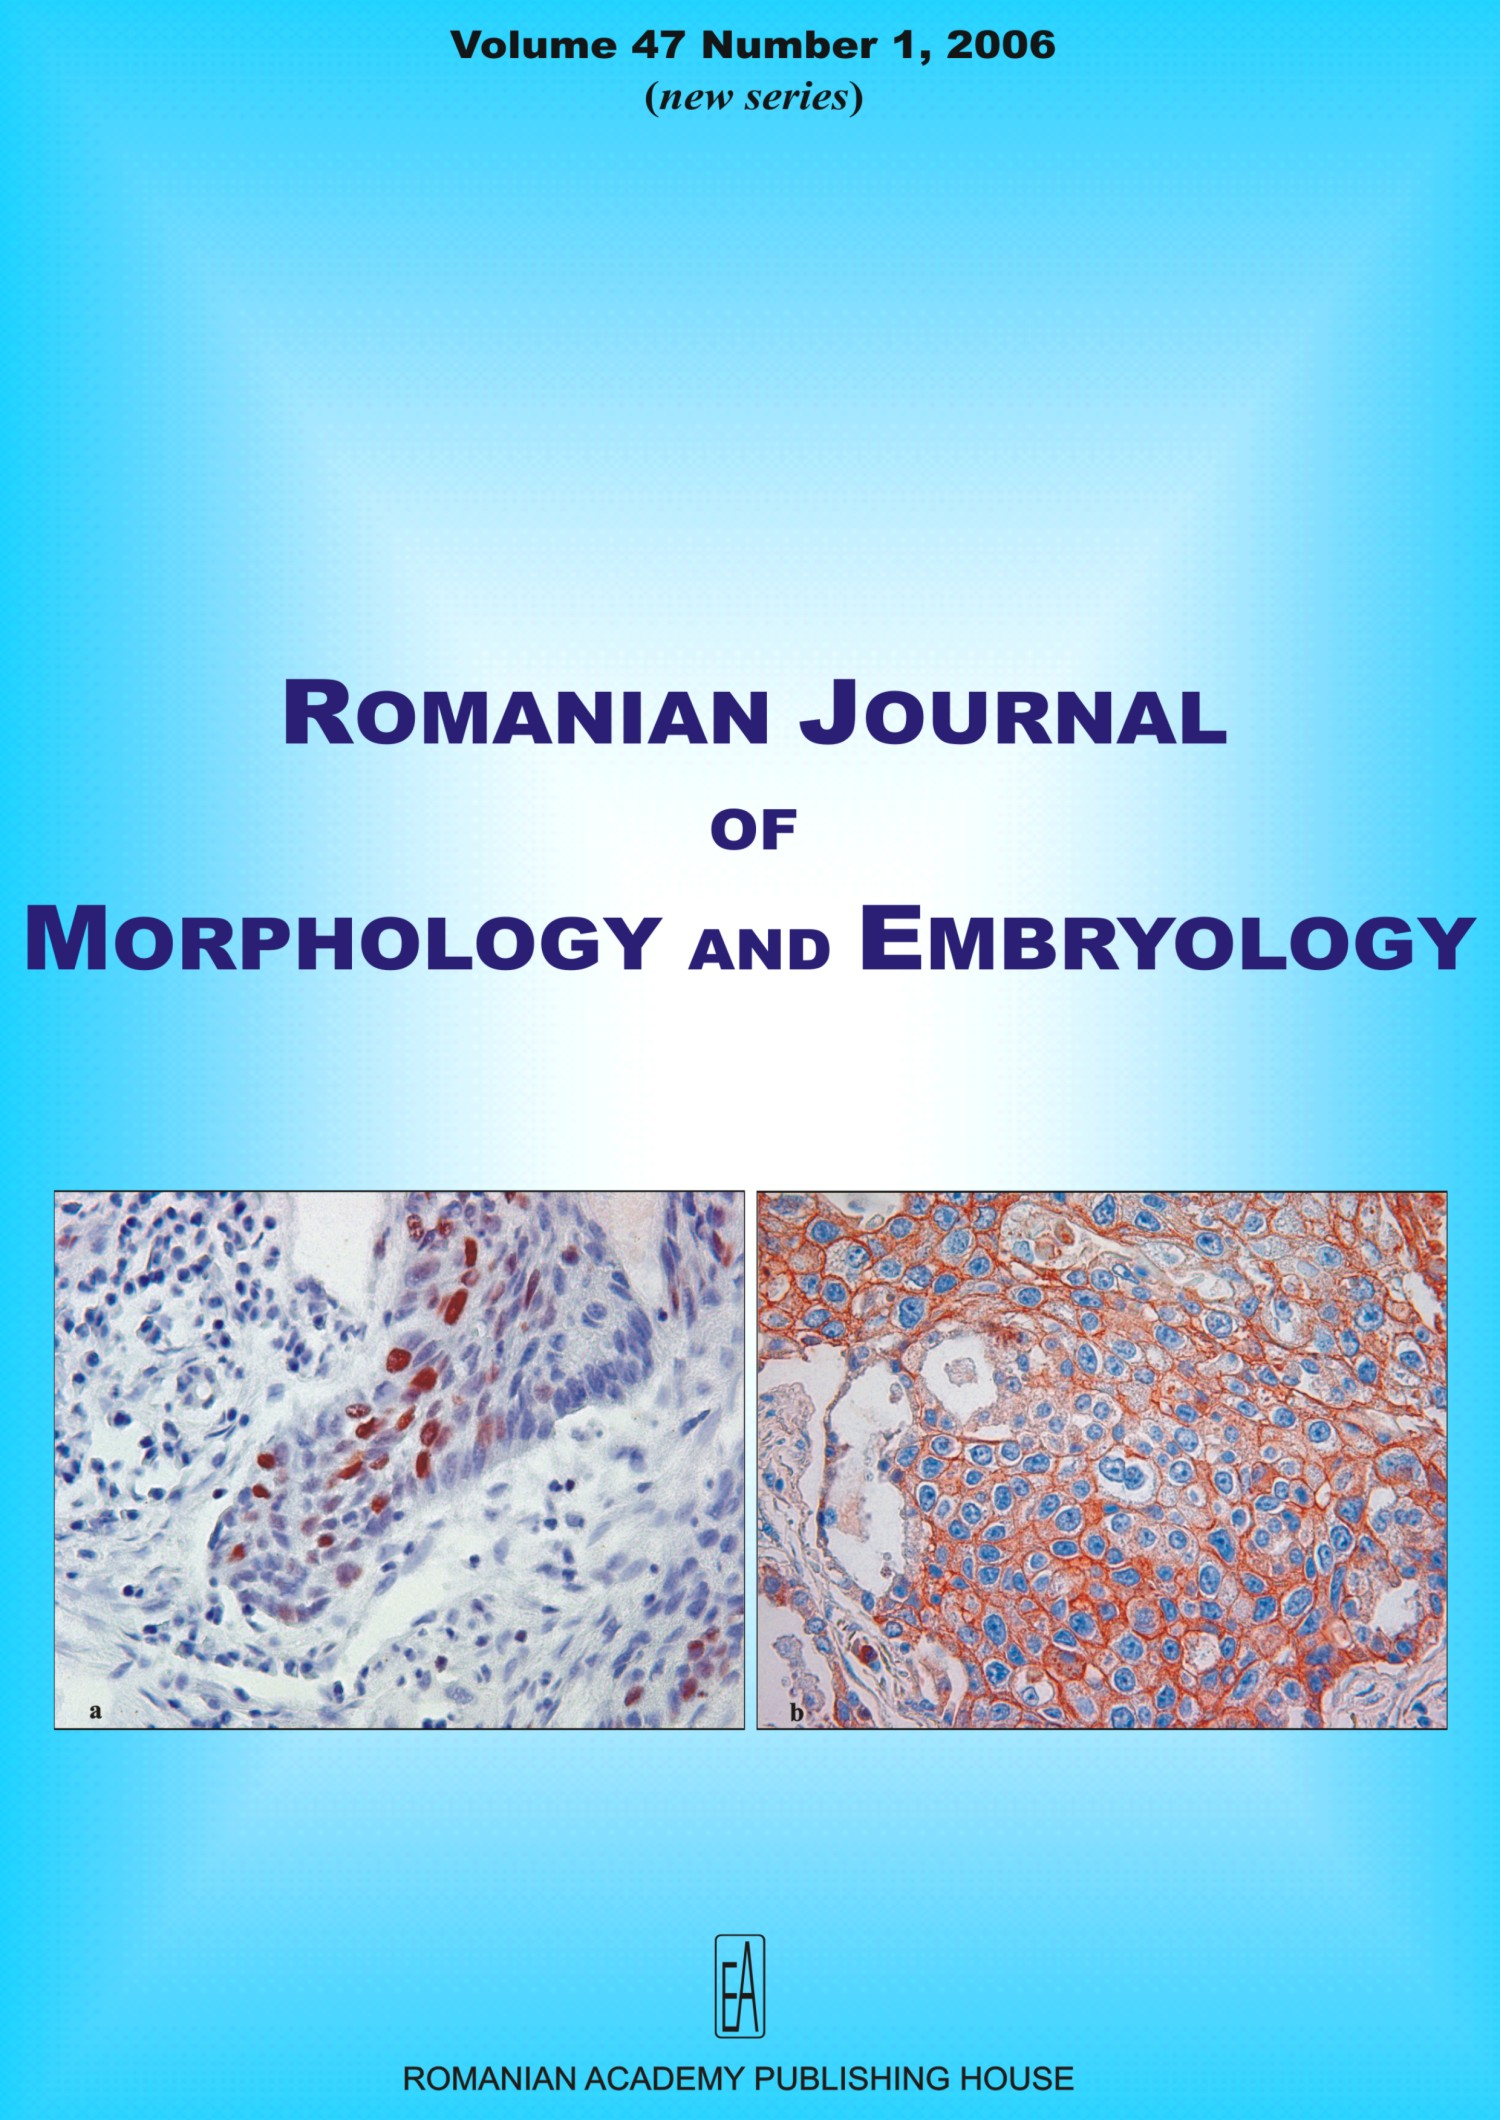 Romanian Journal of Morphology and Embryology, vol. 47 no. 1, 2006